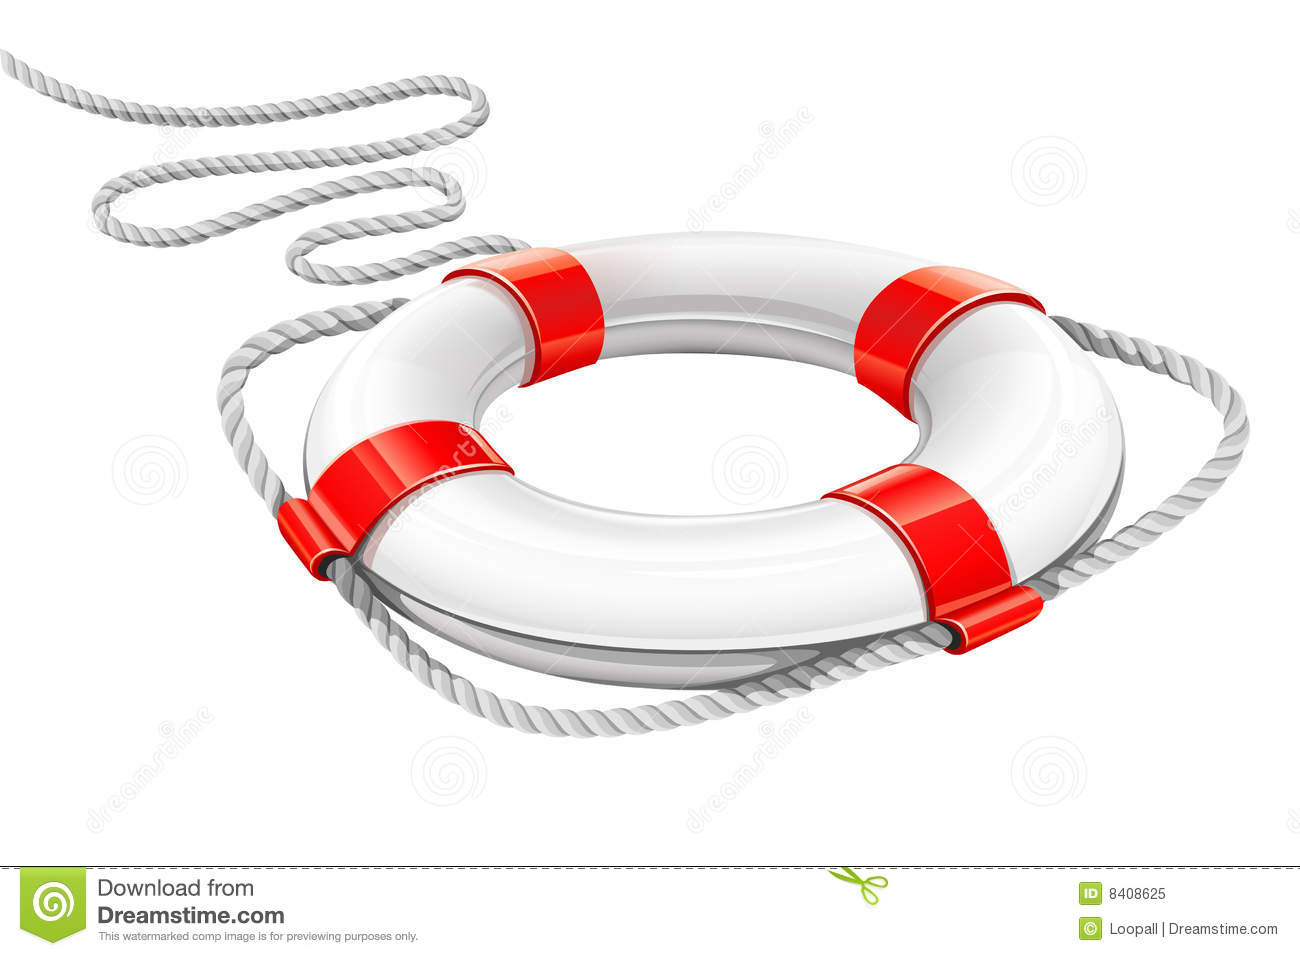 Image result for rescue